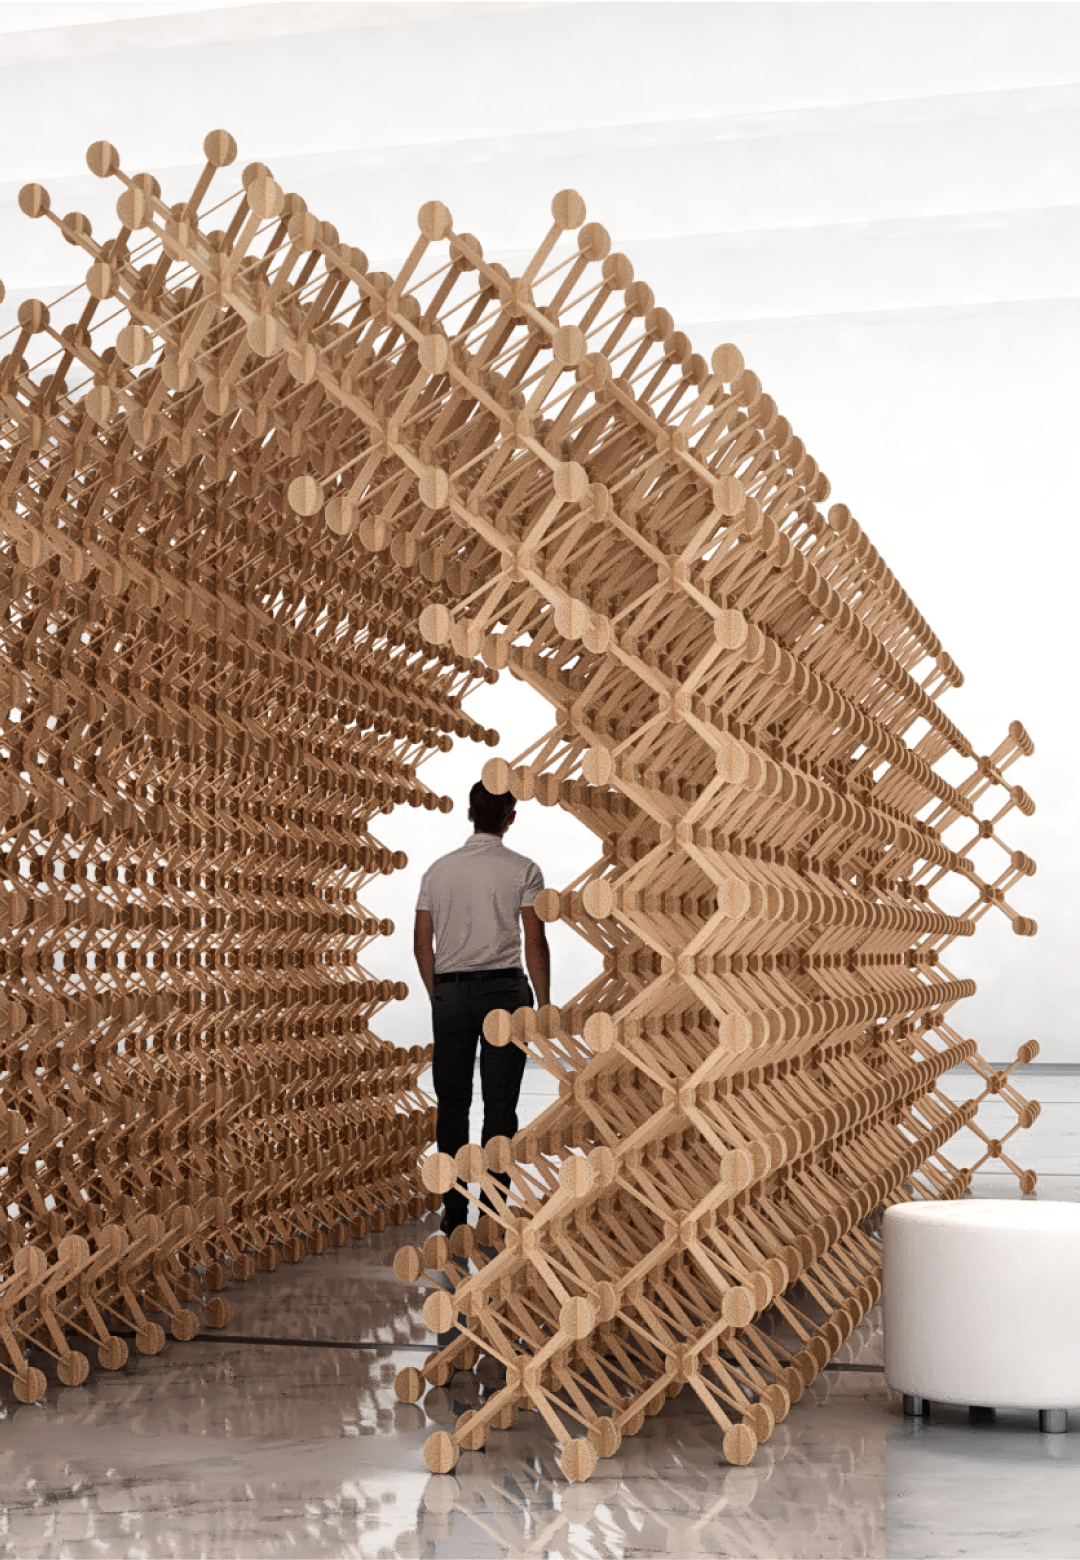 Plexus prototype by Studio Symbiosis | Plexus by Studio Symbiosis | STIRworld